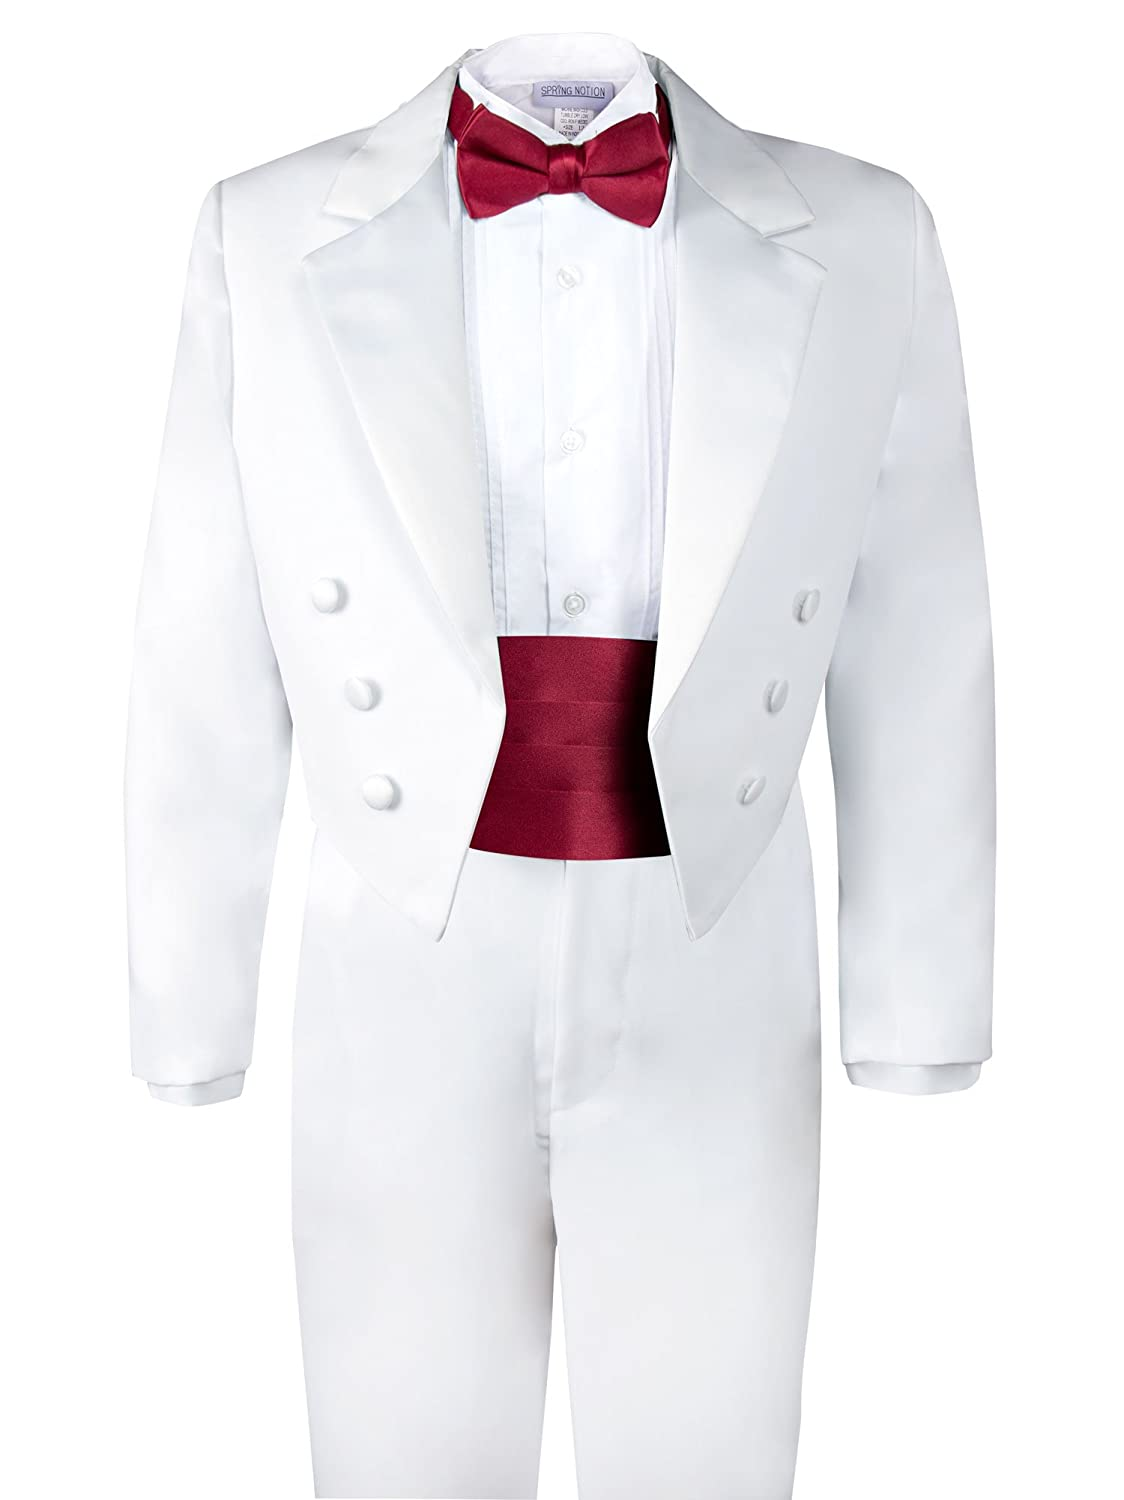 Spring Notion Boys' White Classic Tuxedo with Tail ERF008-SNS-008.WT